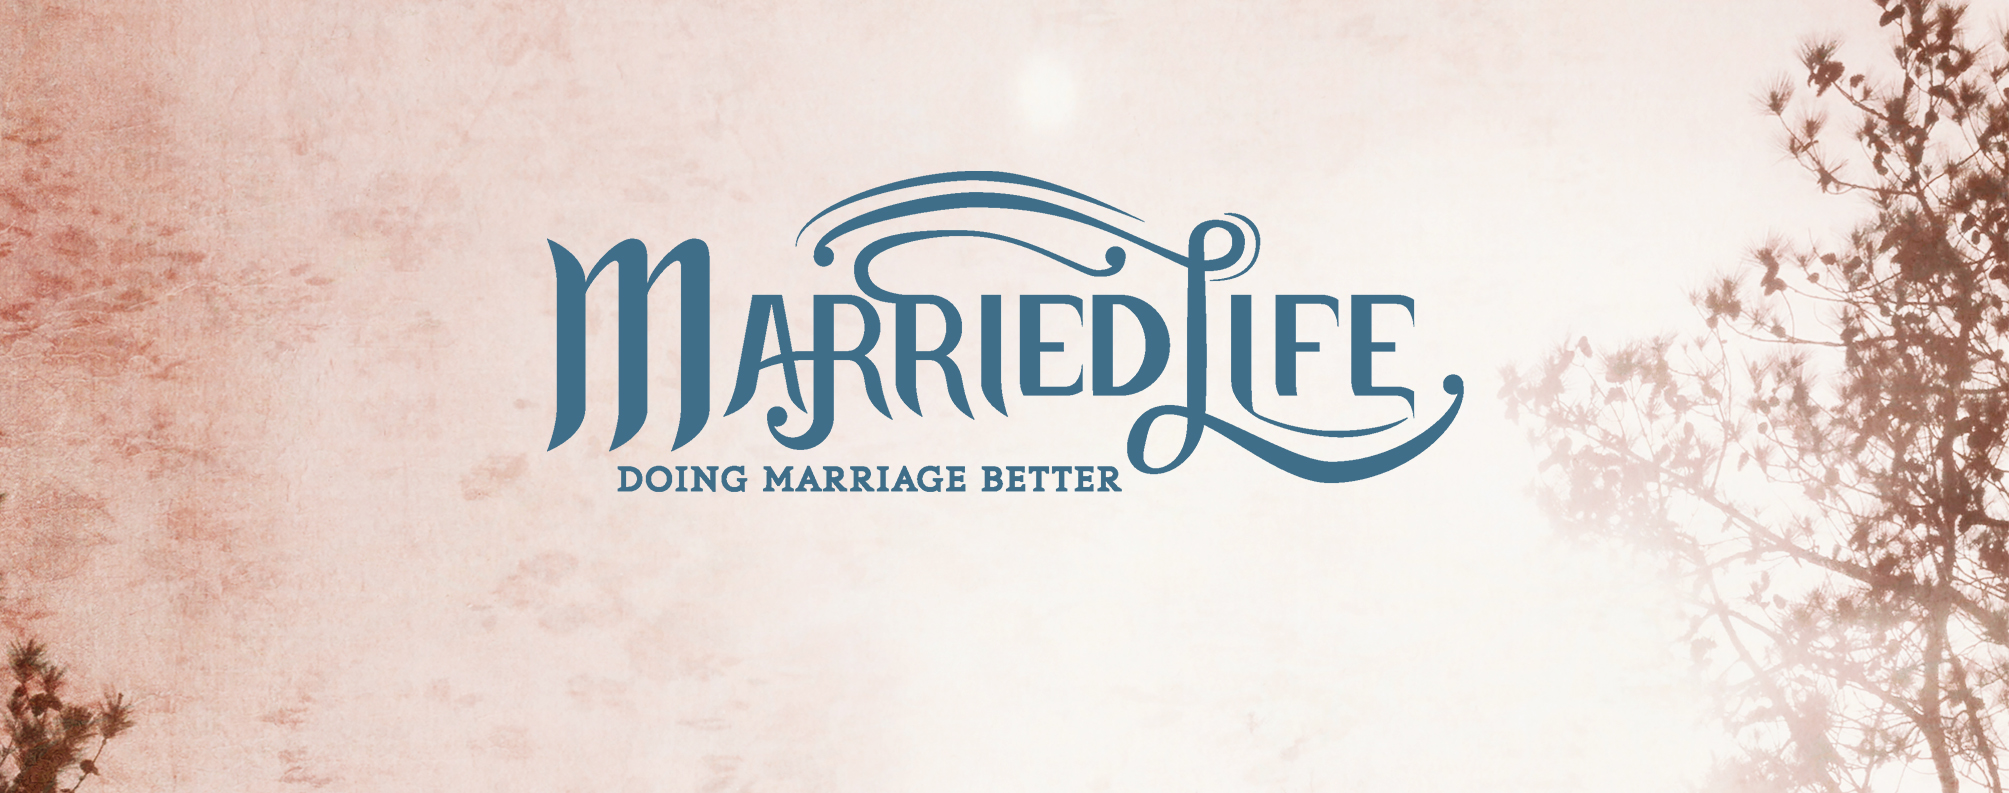 event marriedlife